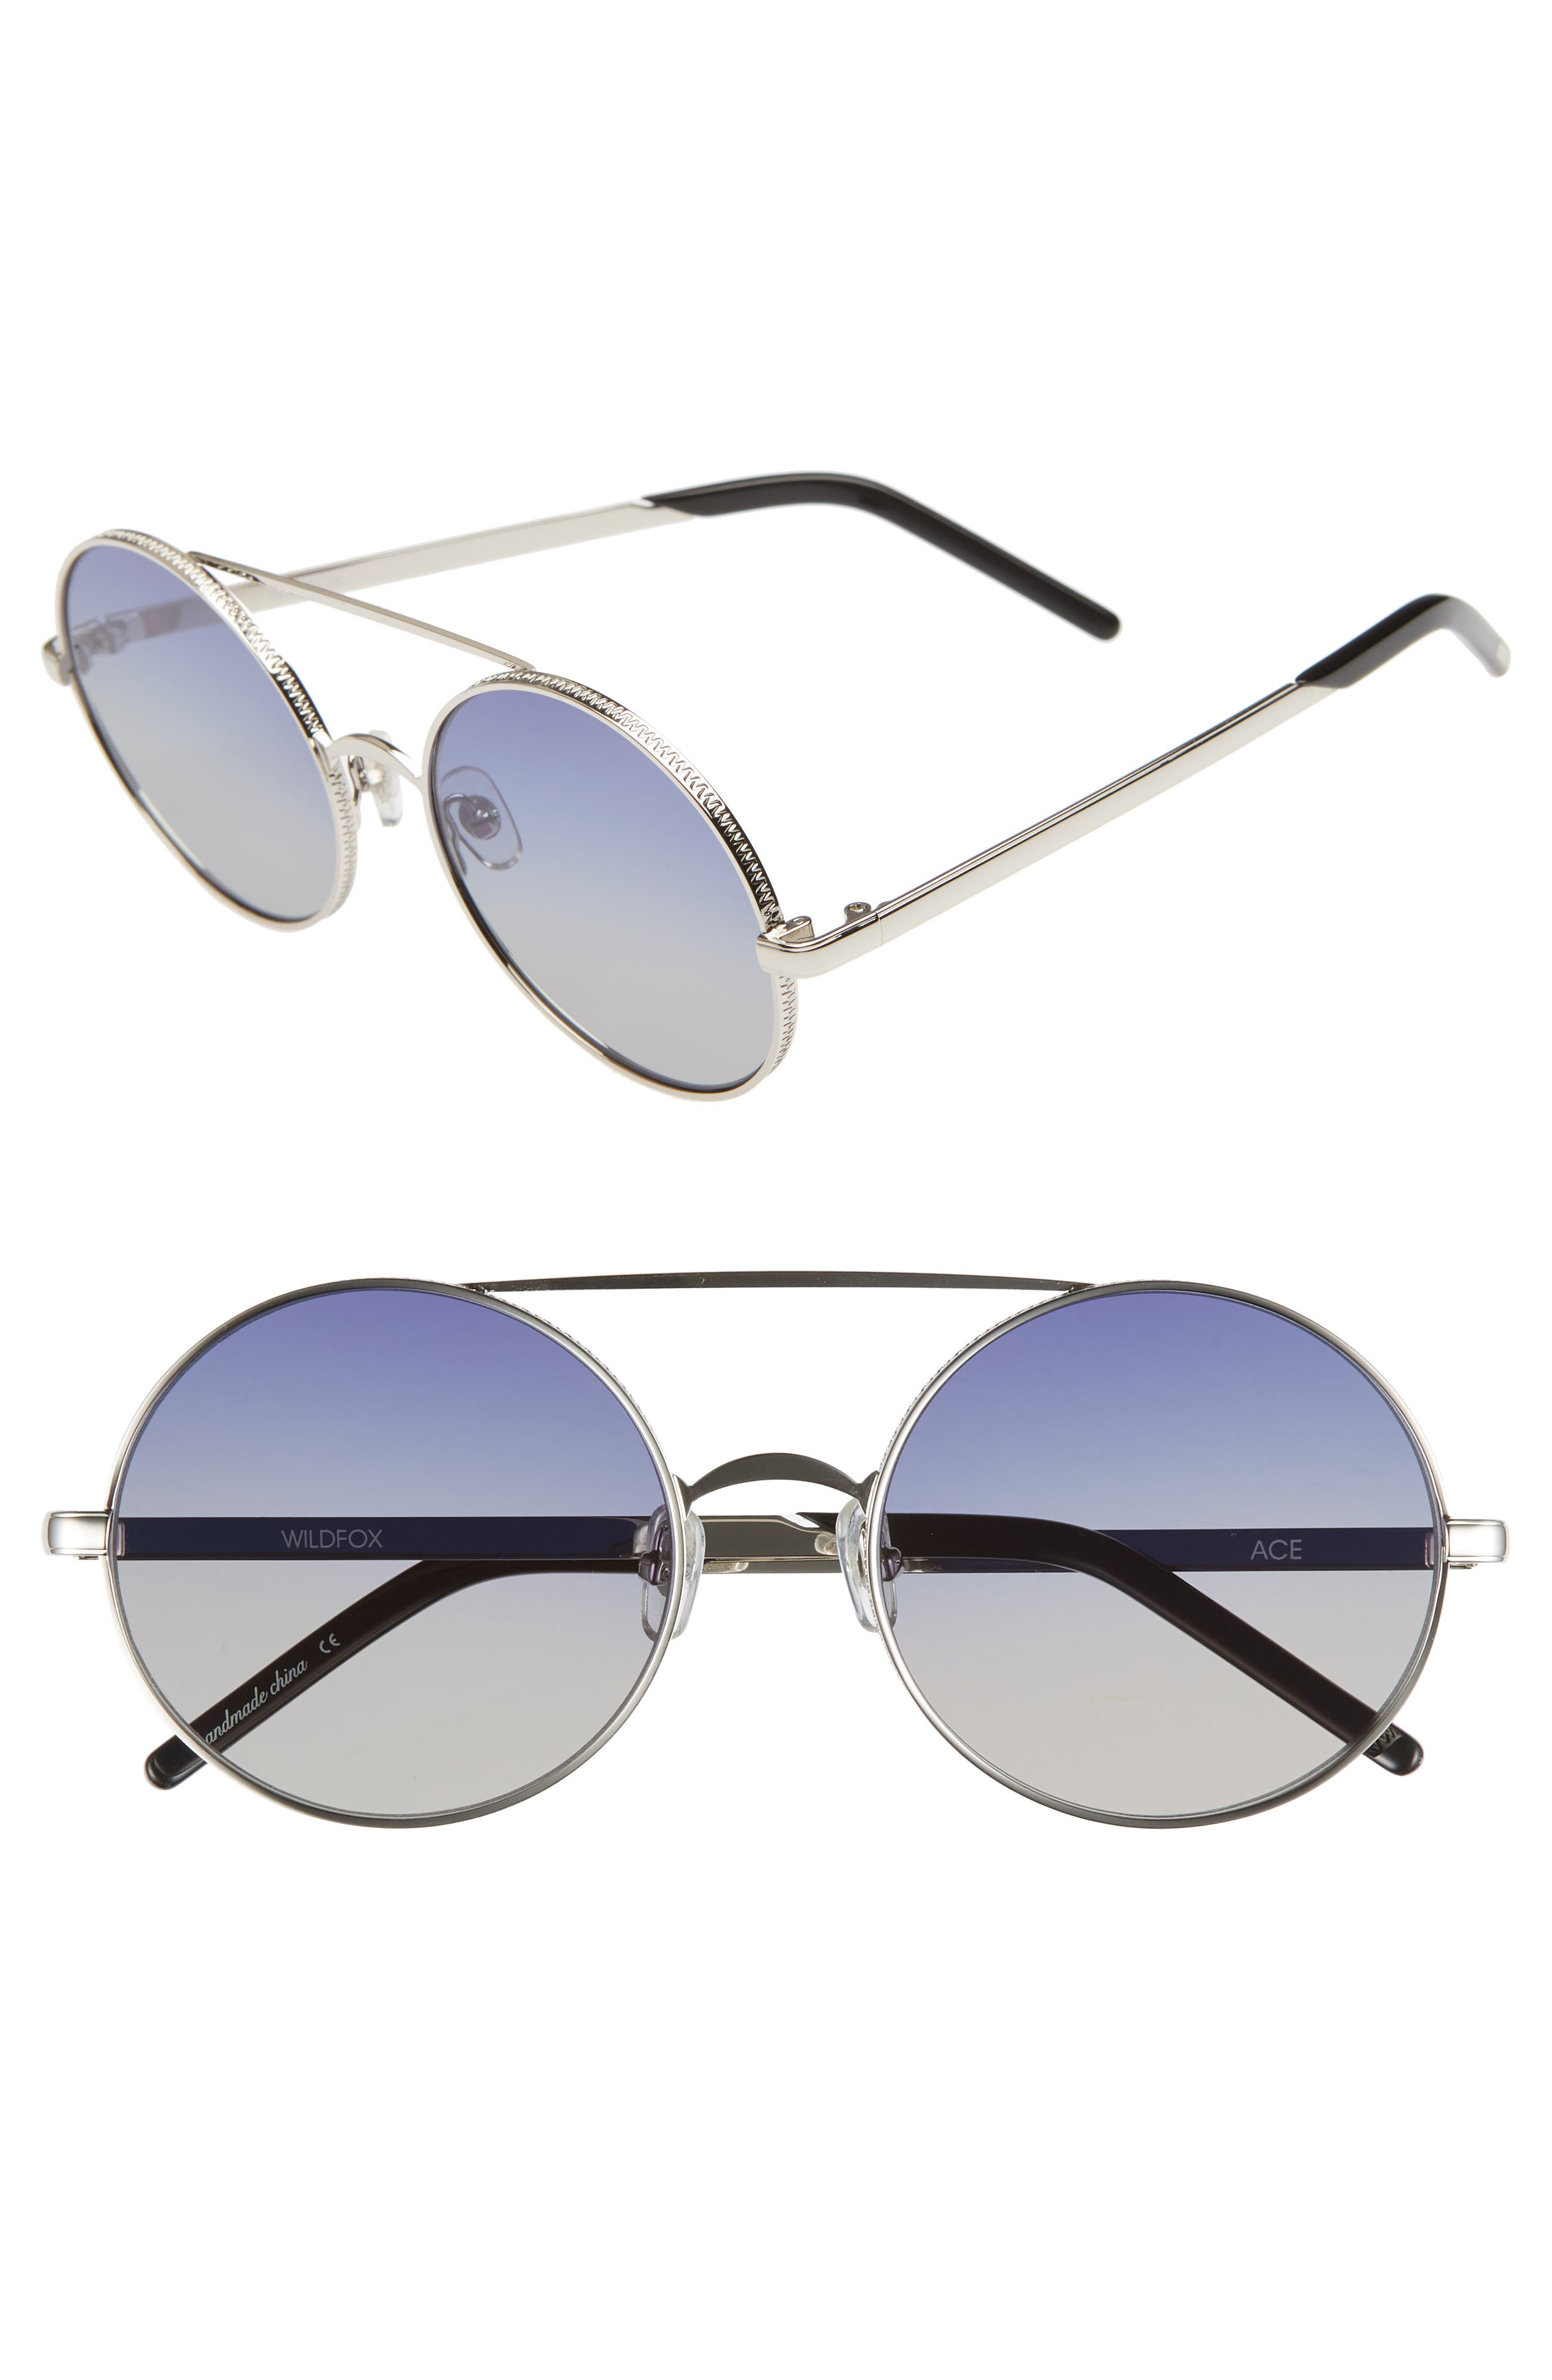 WILDFOX Ace 55mm Round Sunglasses, Main, color, 040